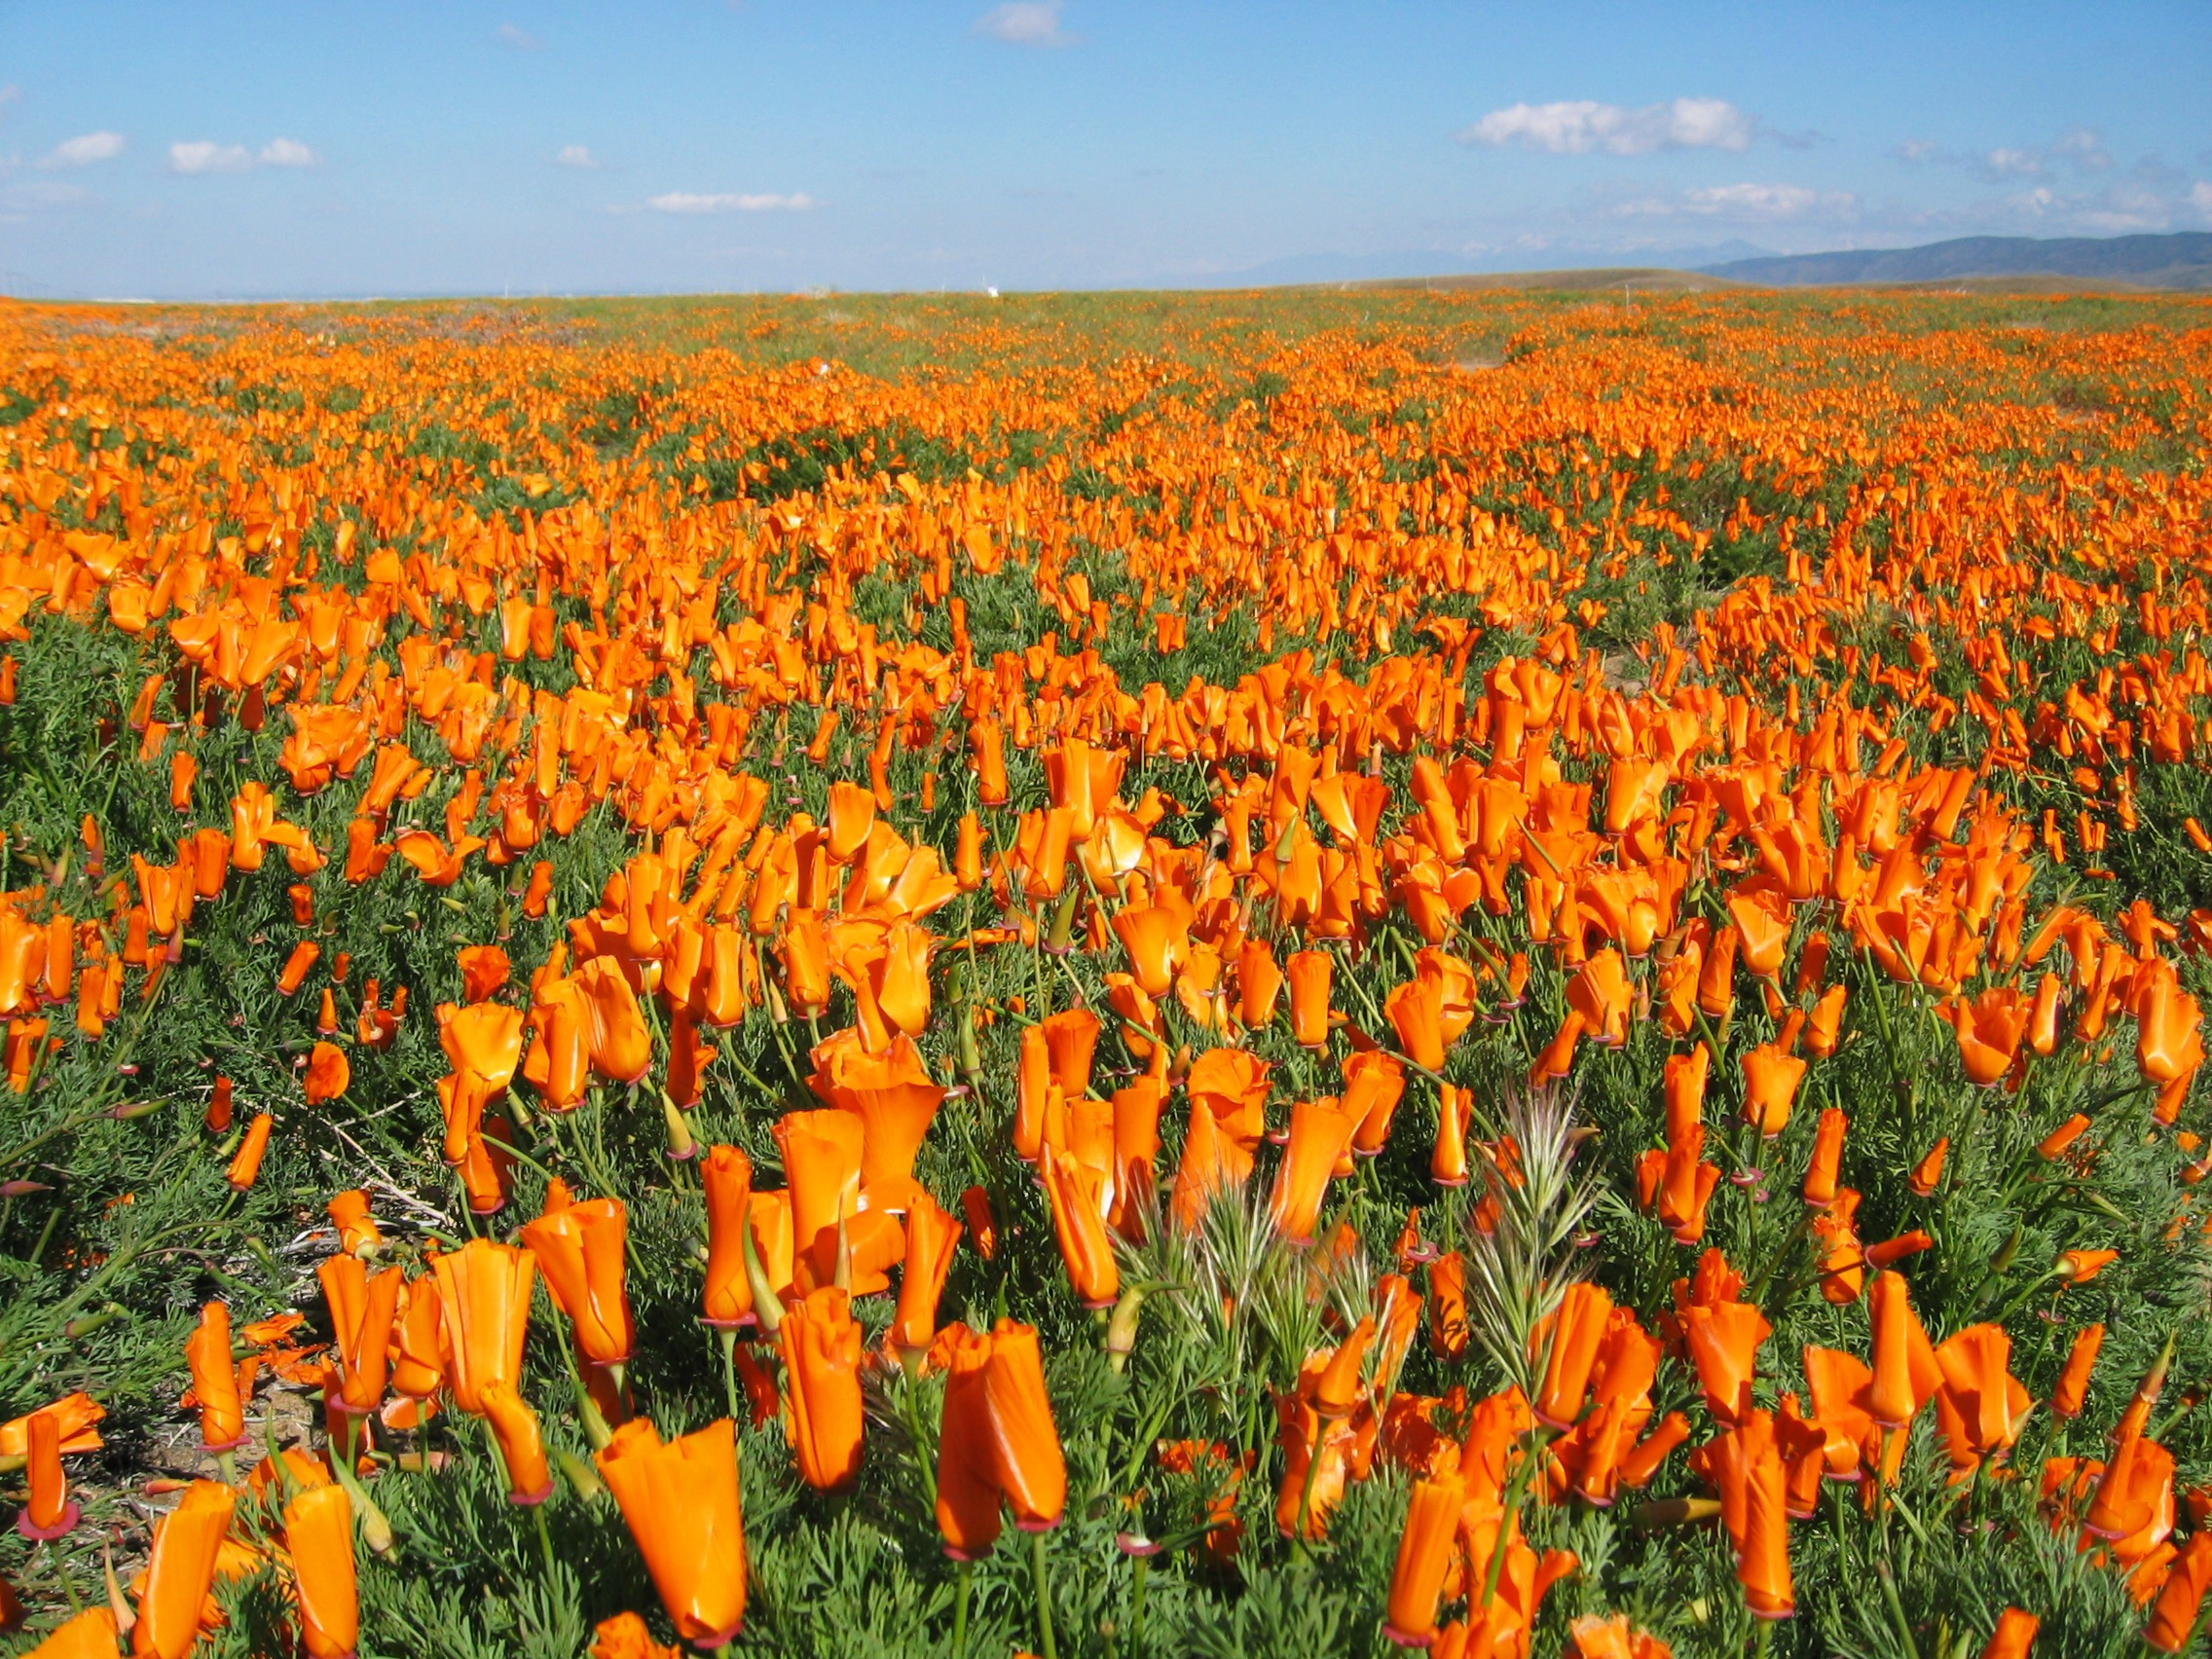 """California Poppies (<em>Eschscholzia californica</em>) at the Antelope Valley California Poppy Reserve in Los Angeles County, California. Photo by <a href=""""https://commons.wikimedia.org/wiki/File:Cal_poppy.jpg"""">Vision</a> via Wikimedia."""